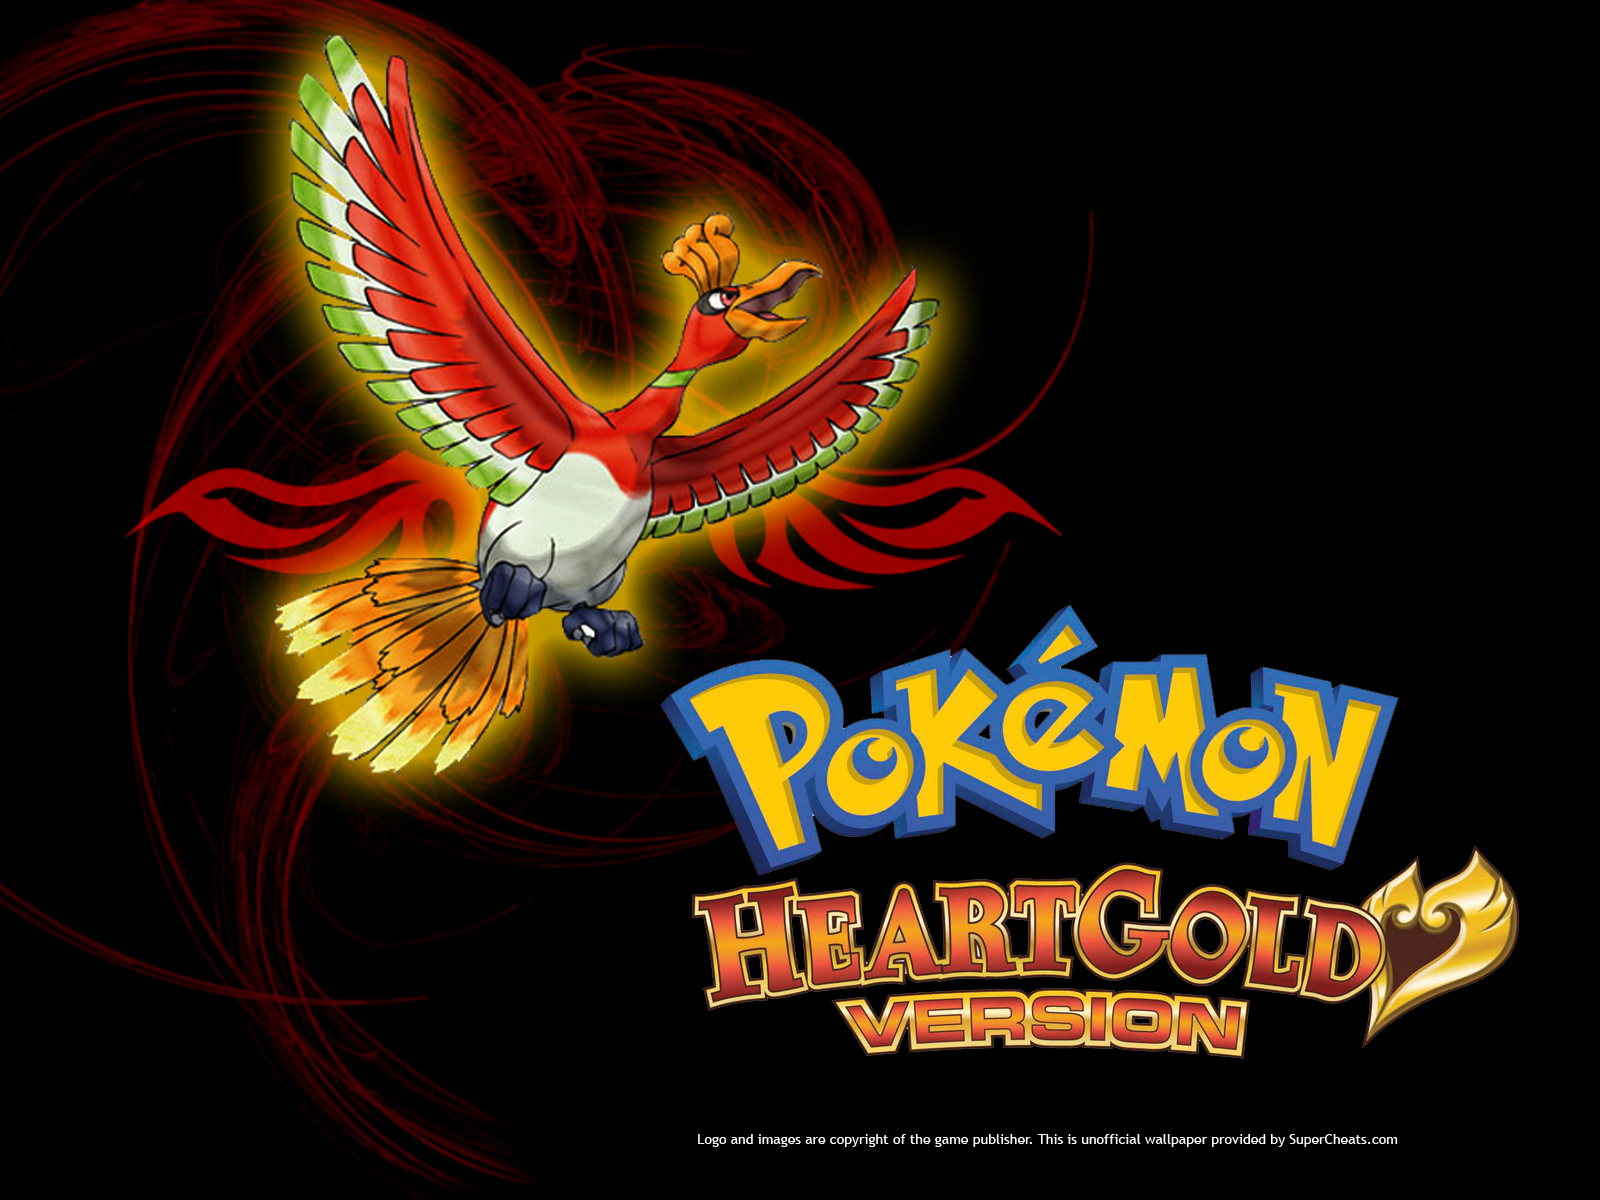 Wallpapers for Pokemon Heart Gold select size 1600x1200 1280x1024 1600x1200